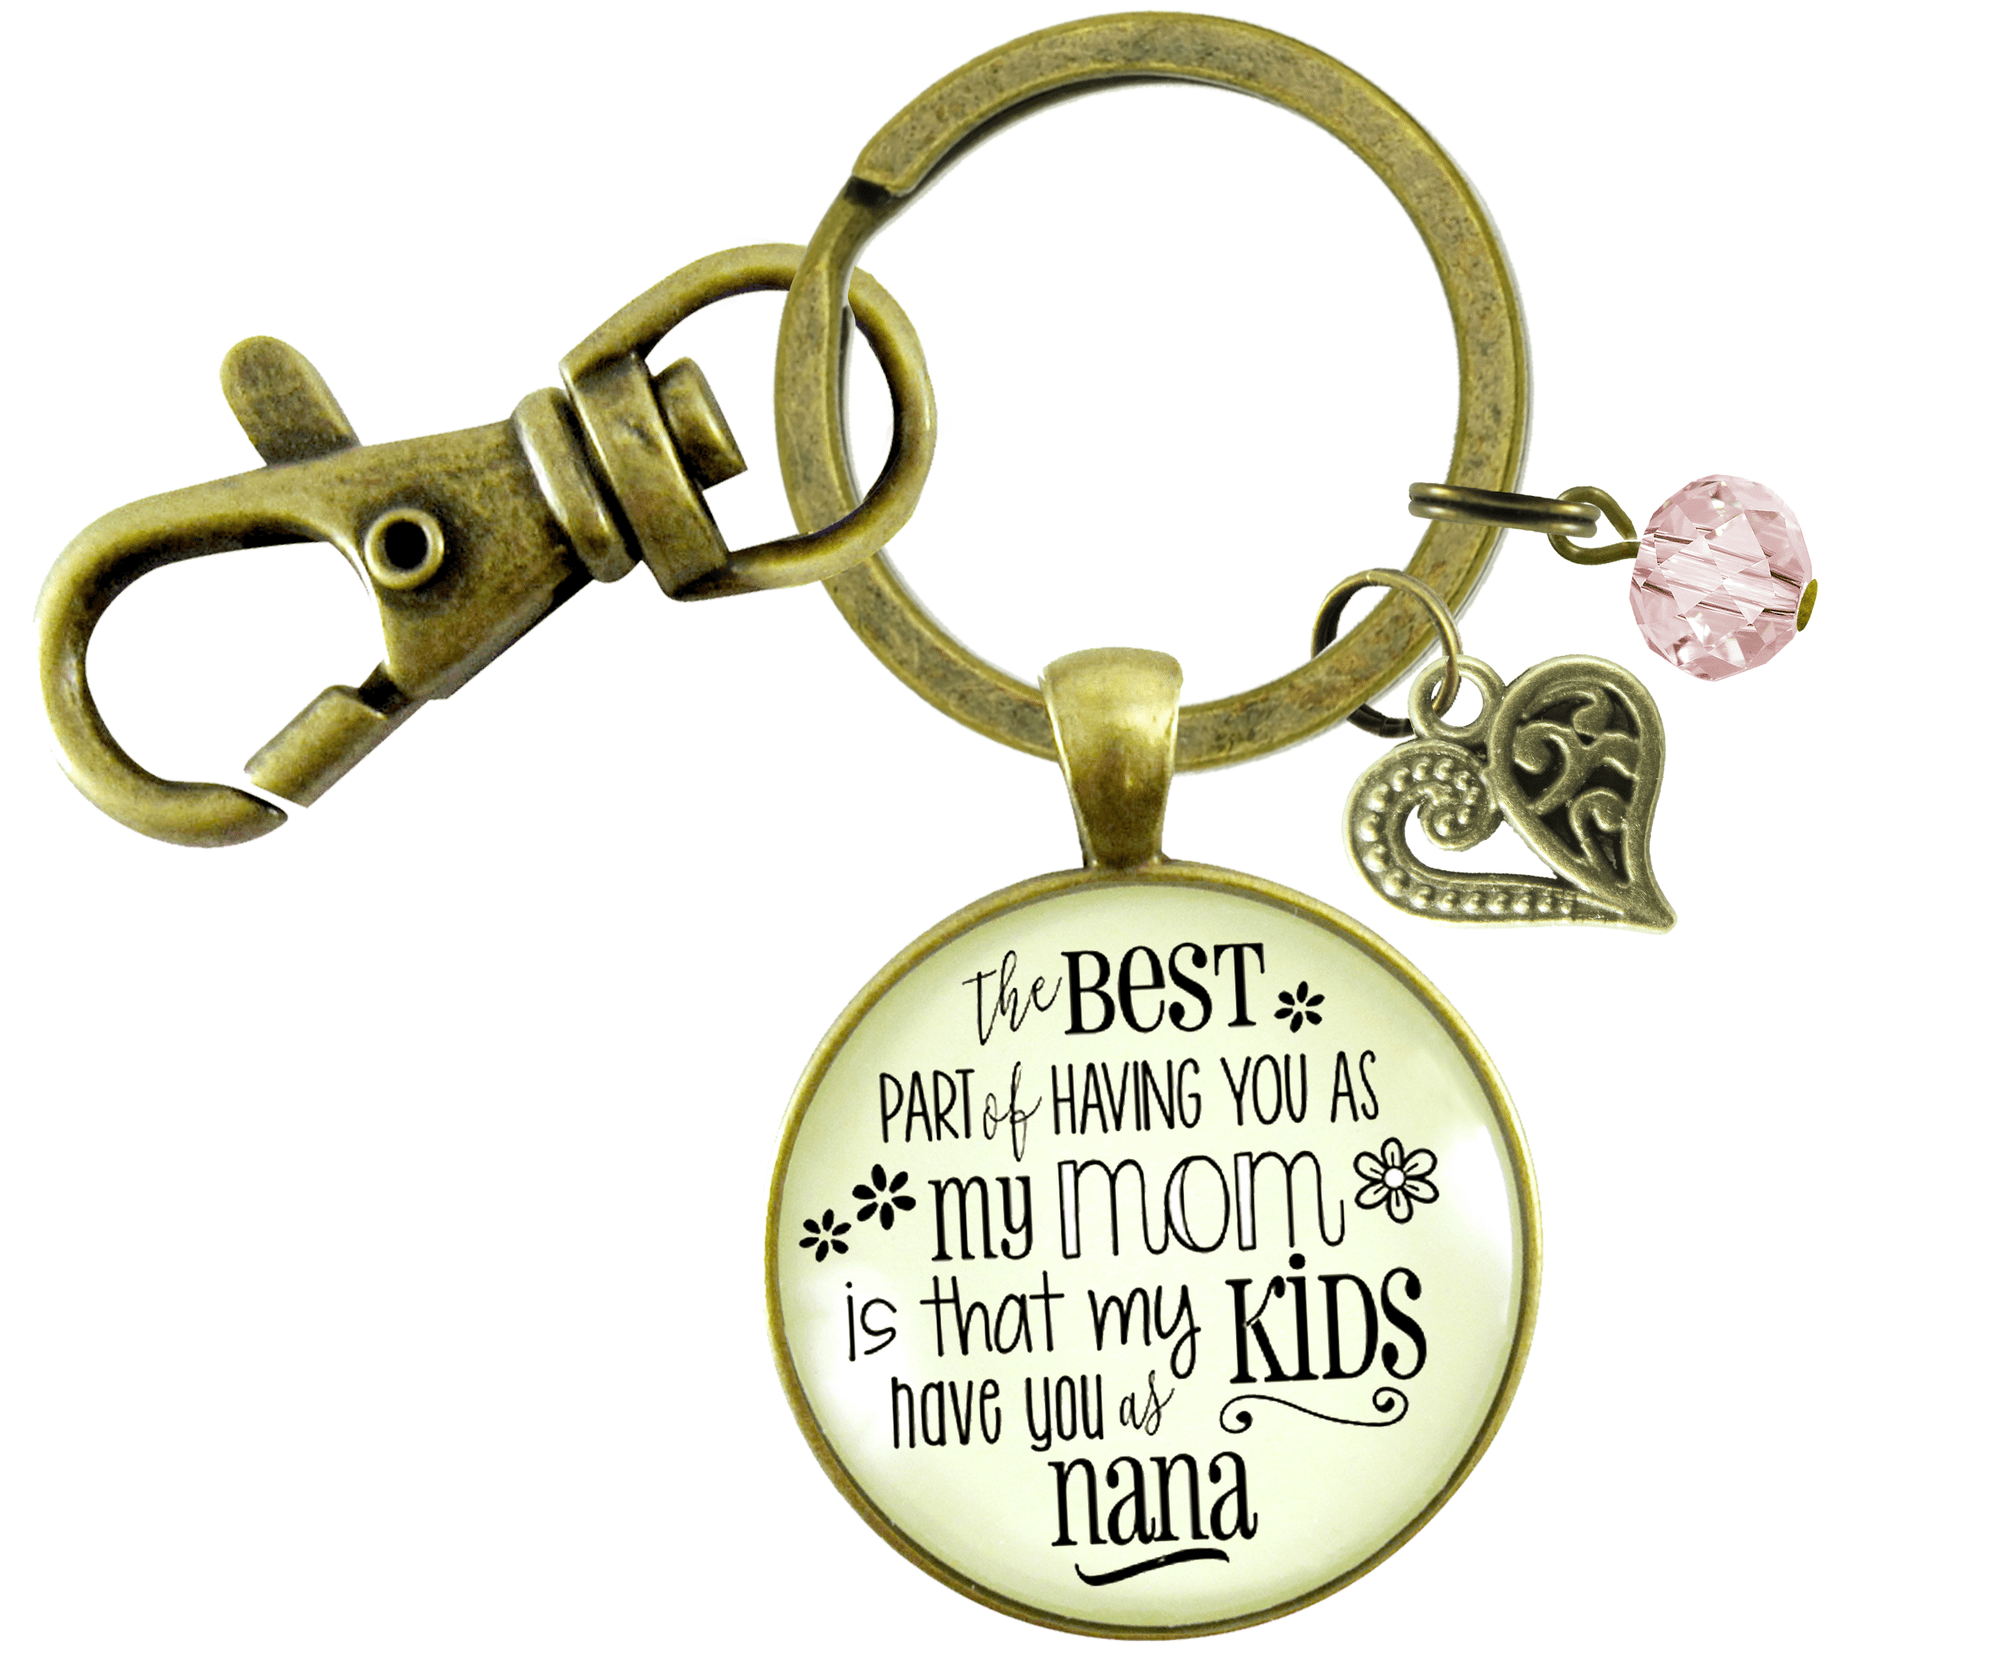 Nana Keychain Best Part You as Mom Kids Grandma Jewelry Gift Daughter - Gutsy Goodness